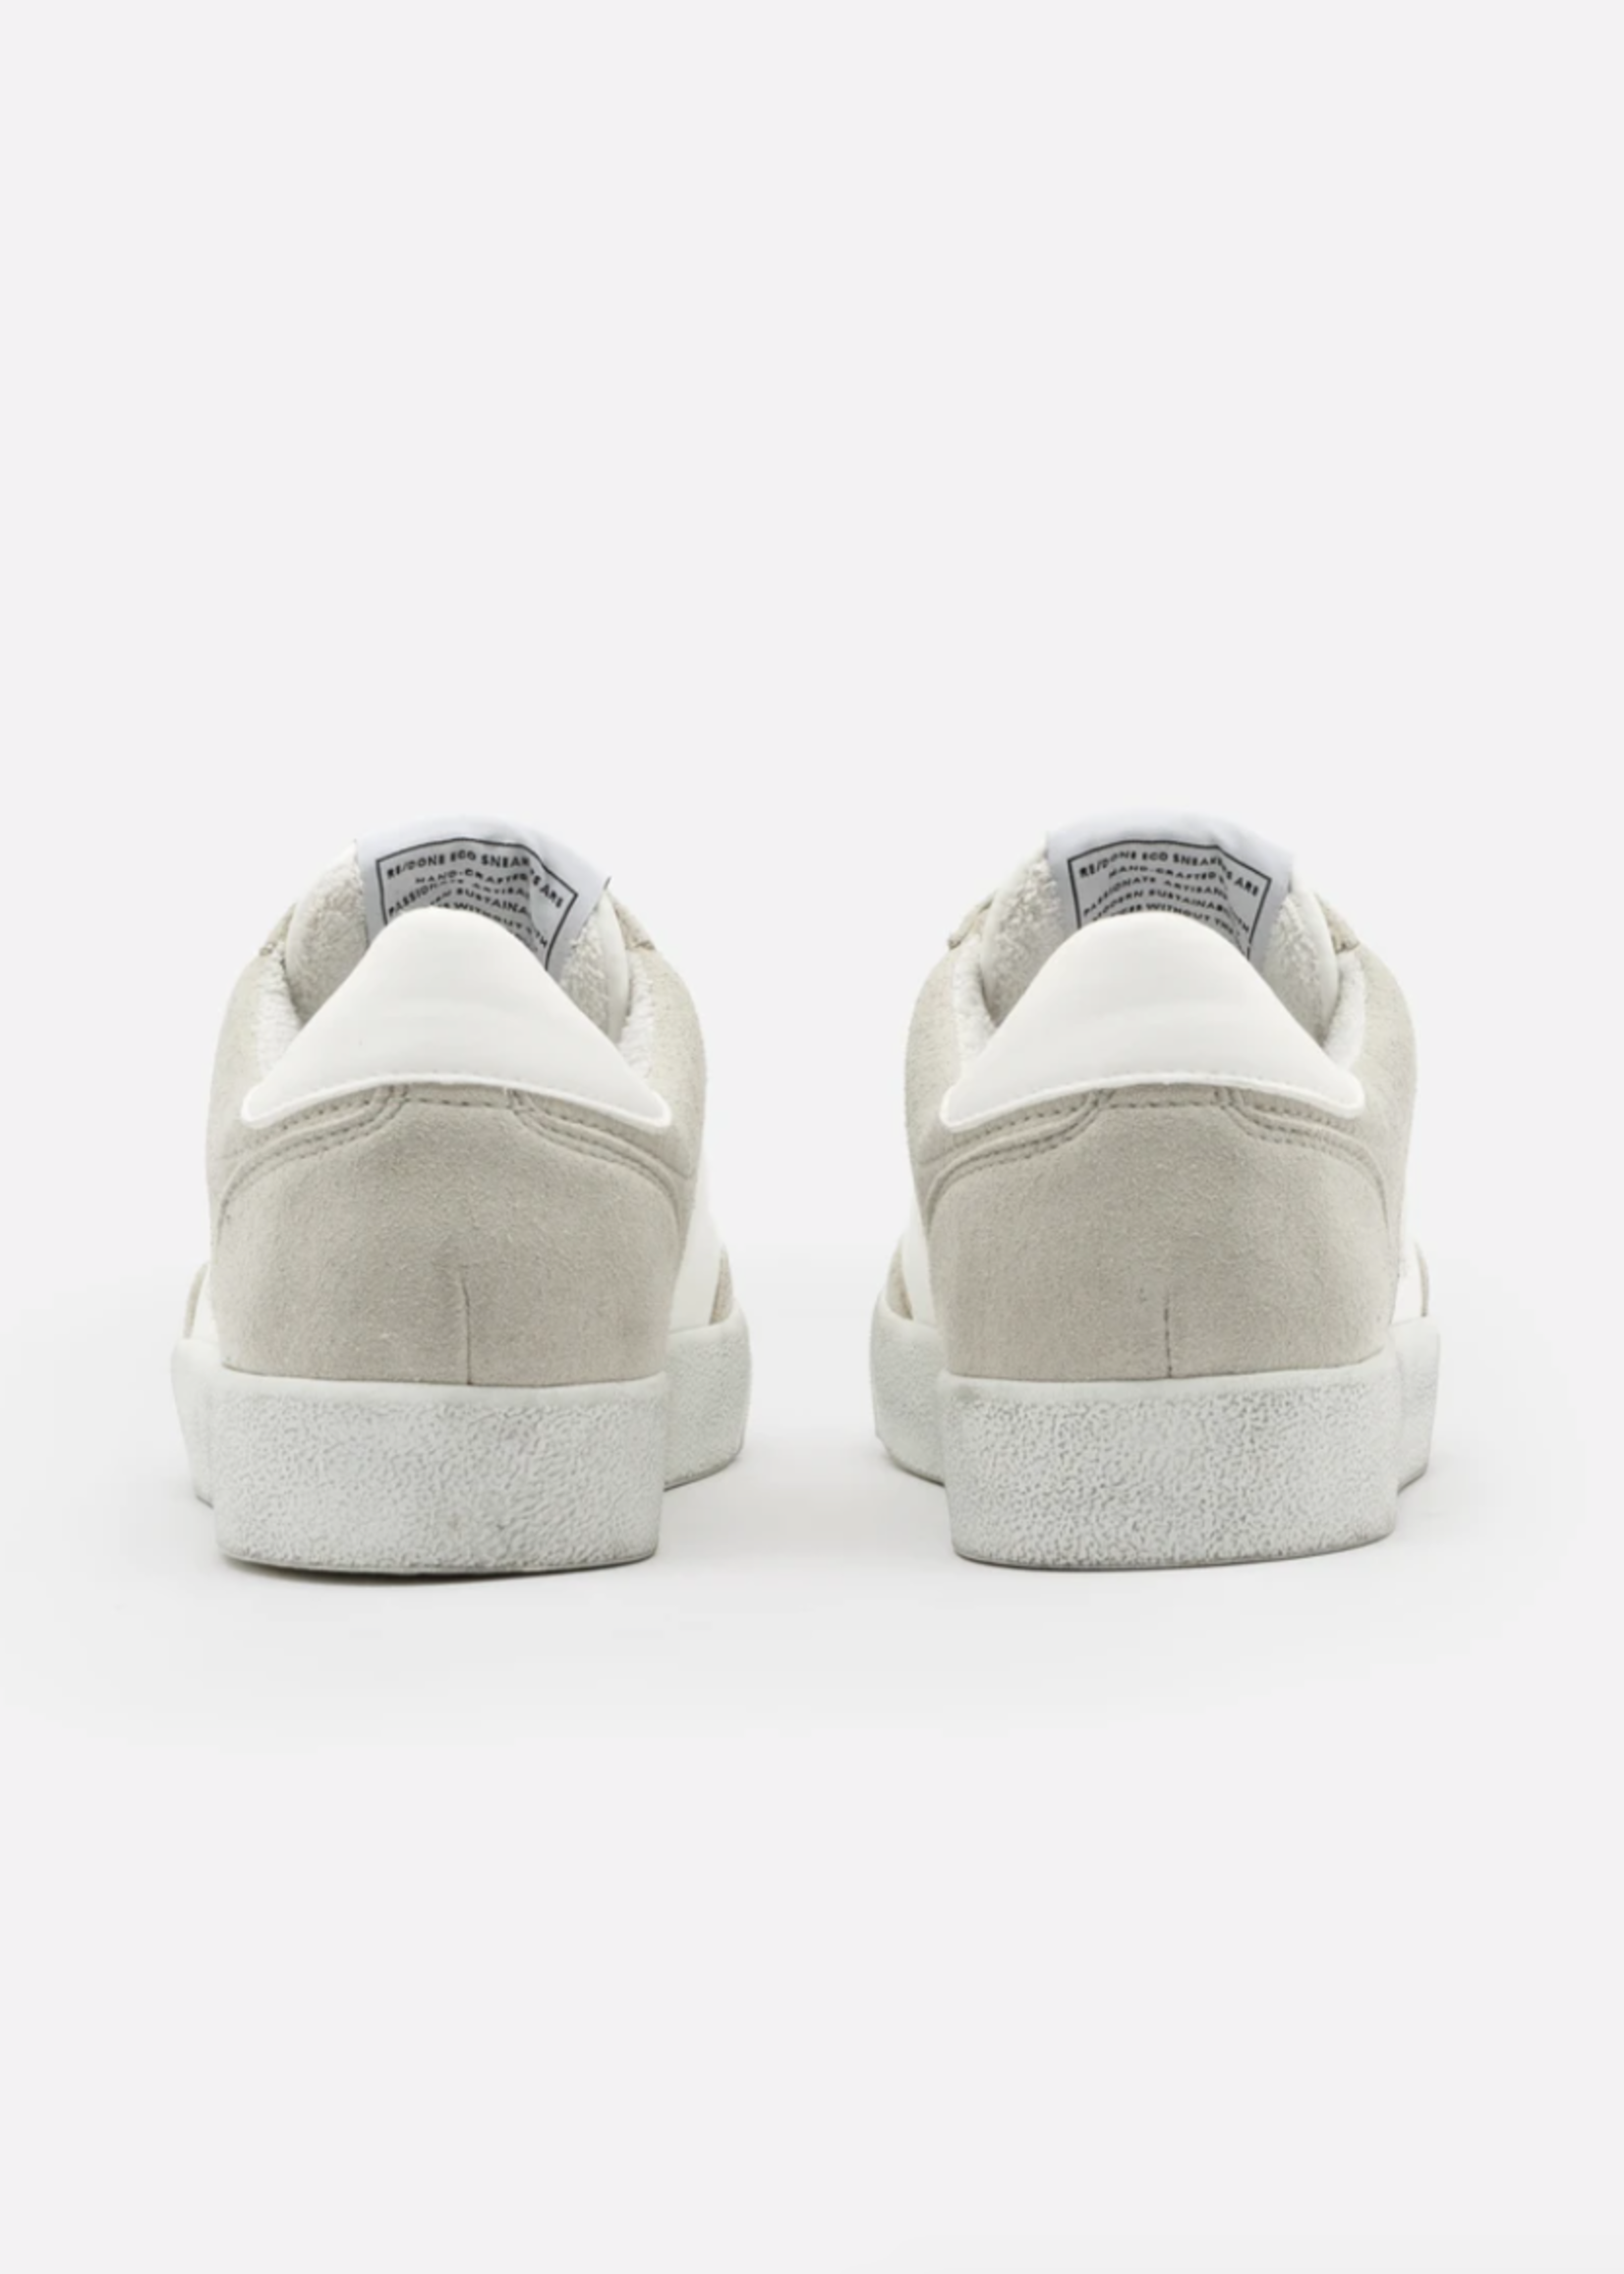 RE.DONE 90'S SKATE SHOE GREY SUEDE 5/21